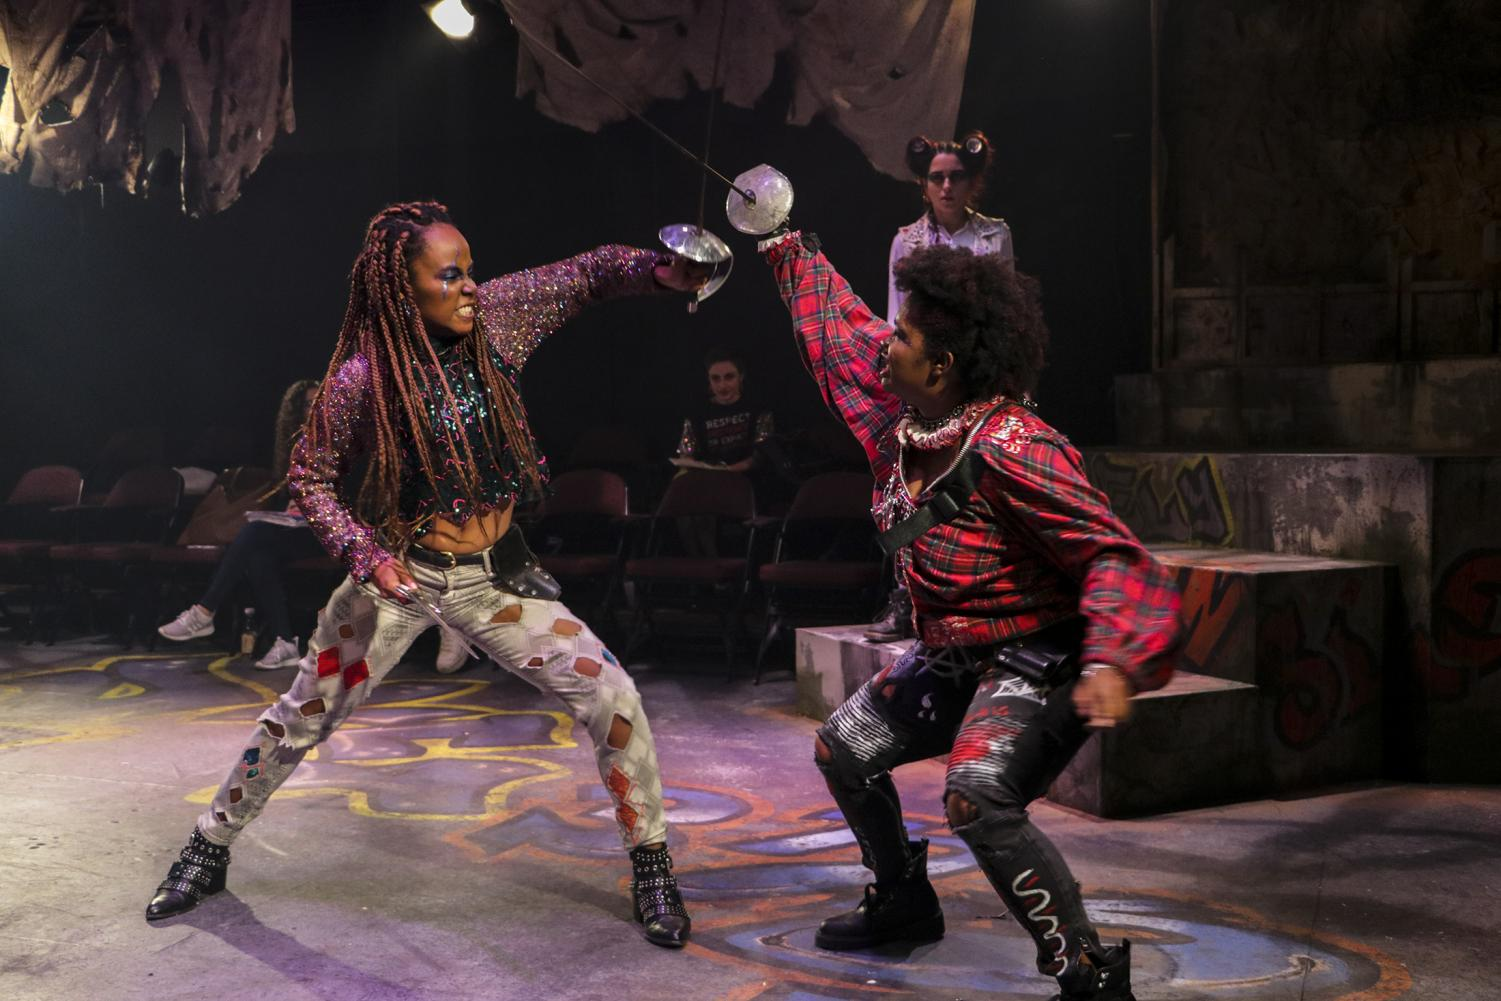 Talia Moore, musical theater senior, performs a fight scene as Mercutio alongside Tybalt played by Cereyna Jade Bougouneau, theater senior. Loyola's Theatre Department will present their production of an all-female Romeo & Juliet beginning Nov. 8, 2019. Photo credit: Hannah Renton